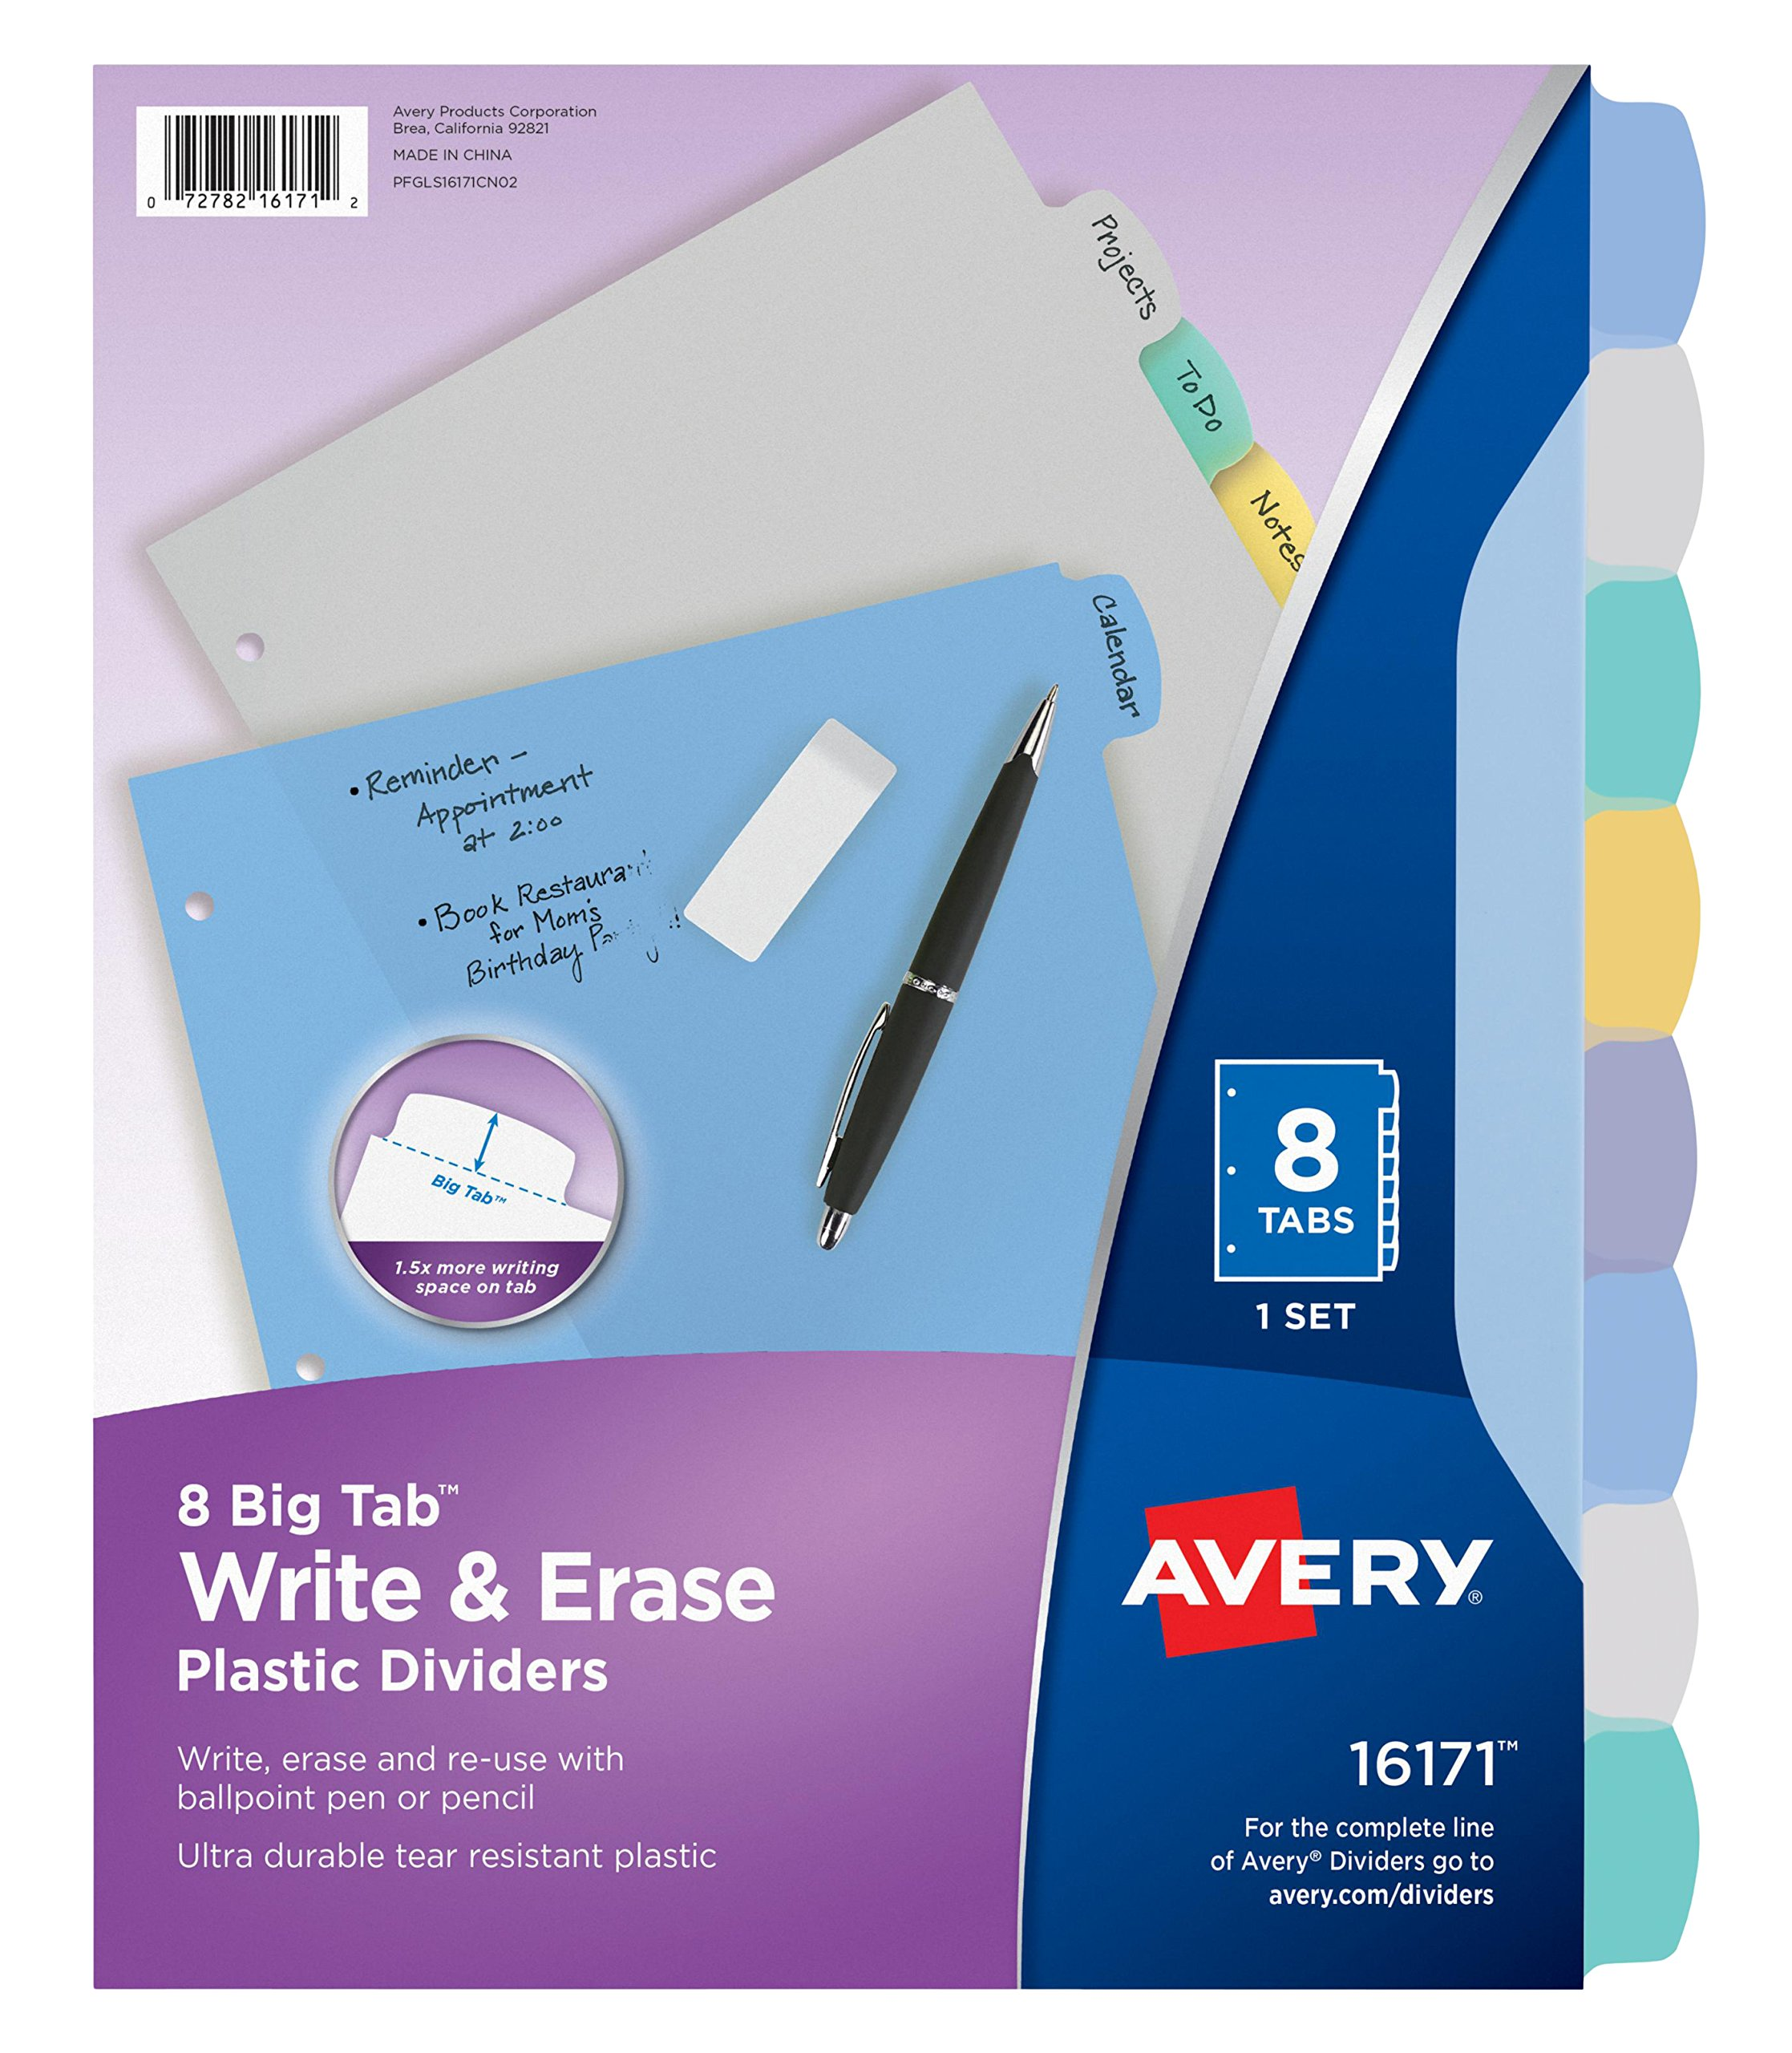 Avery Big Tab Write & Erase Durable Plastic Dividers, 8 Multicolor Tabs, Case Pack of 24 (16171)